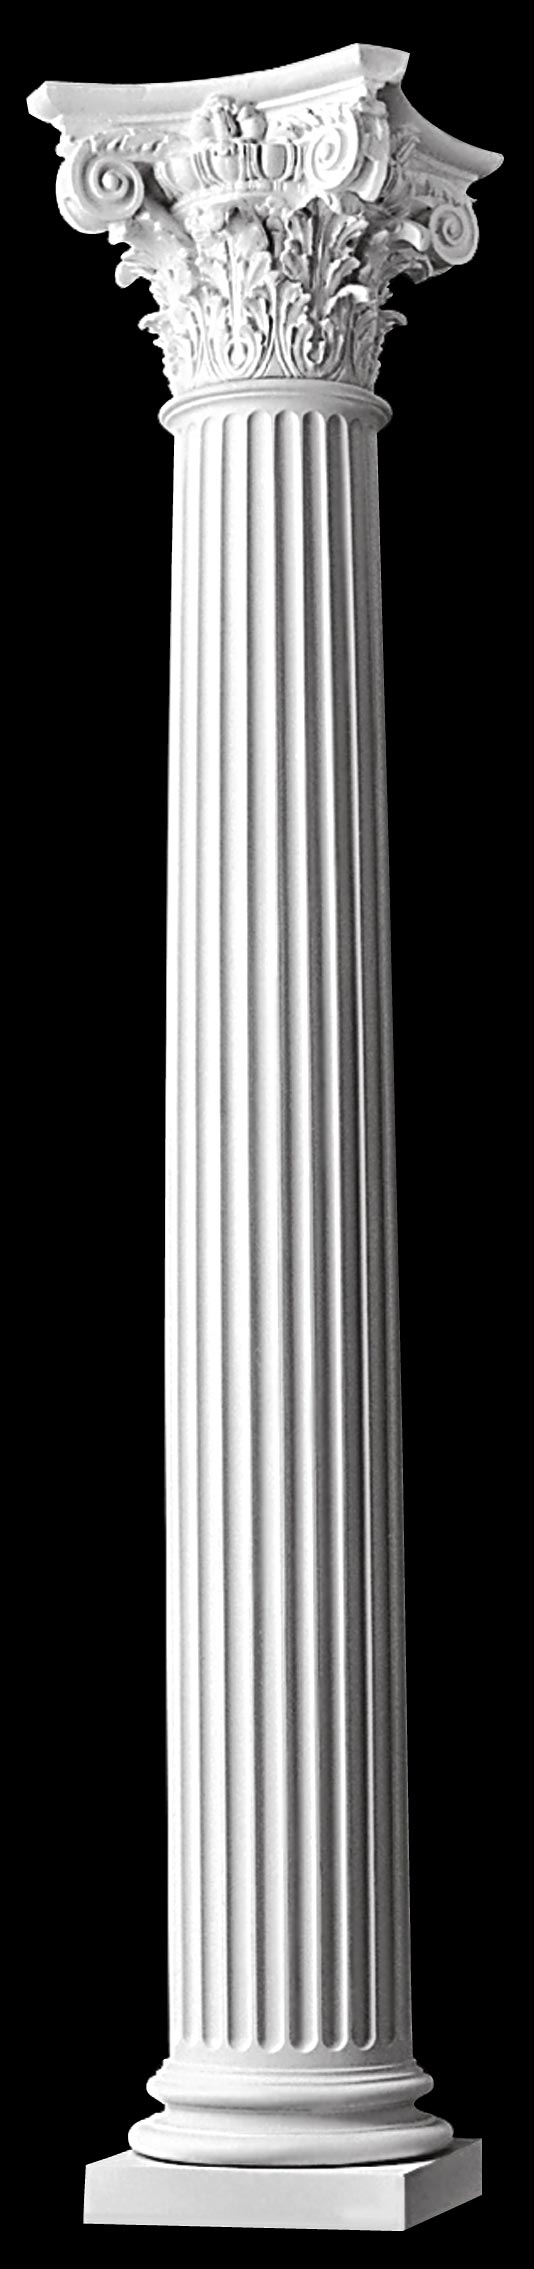 Columns fluted composite order wood columns 1 800 486 2118 for Fiberglass architectural columns